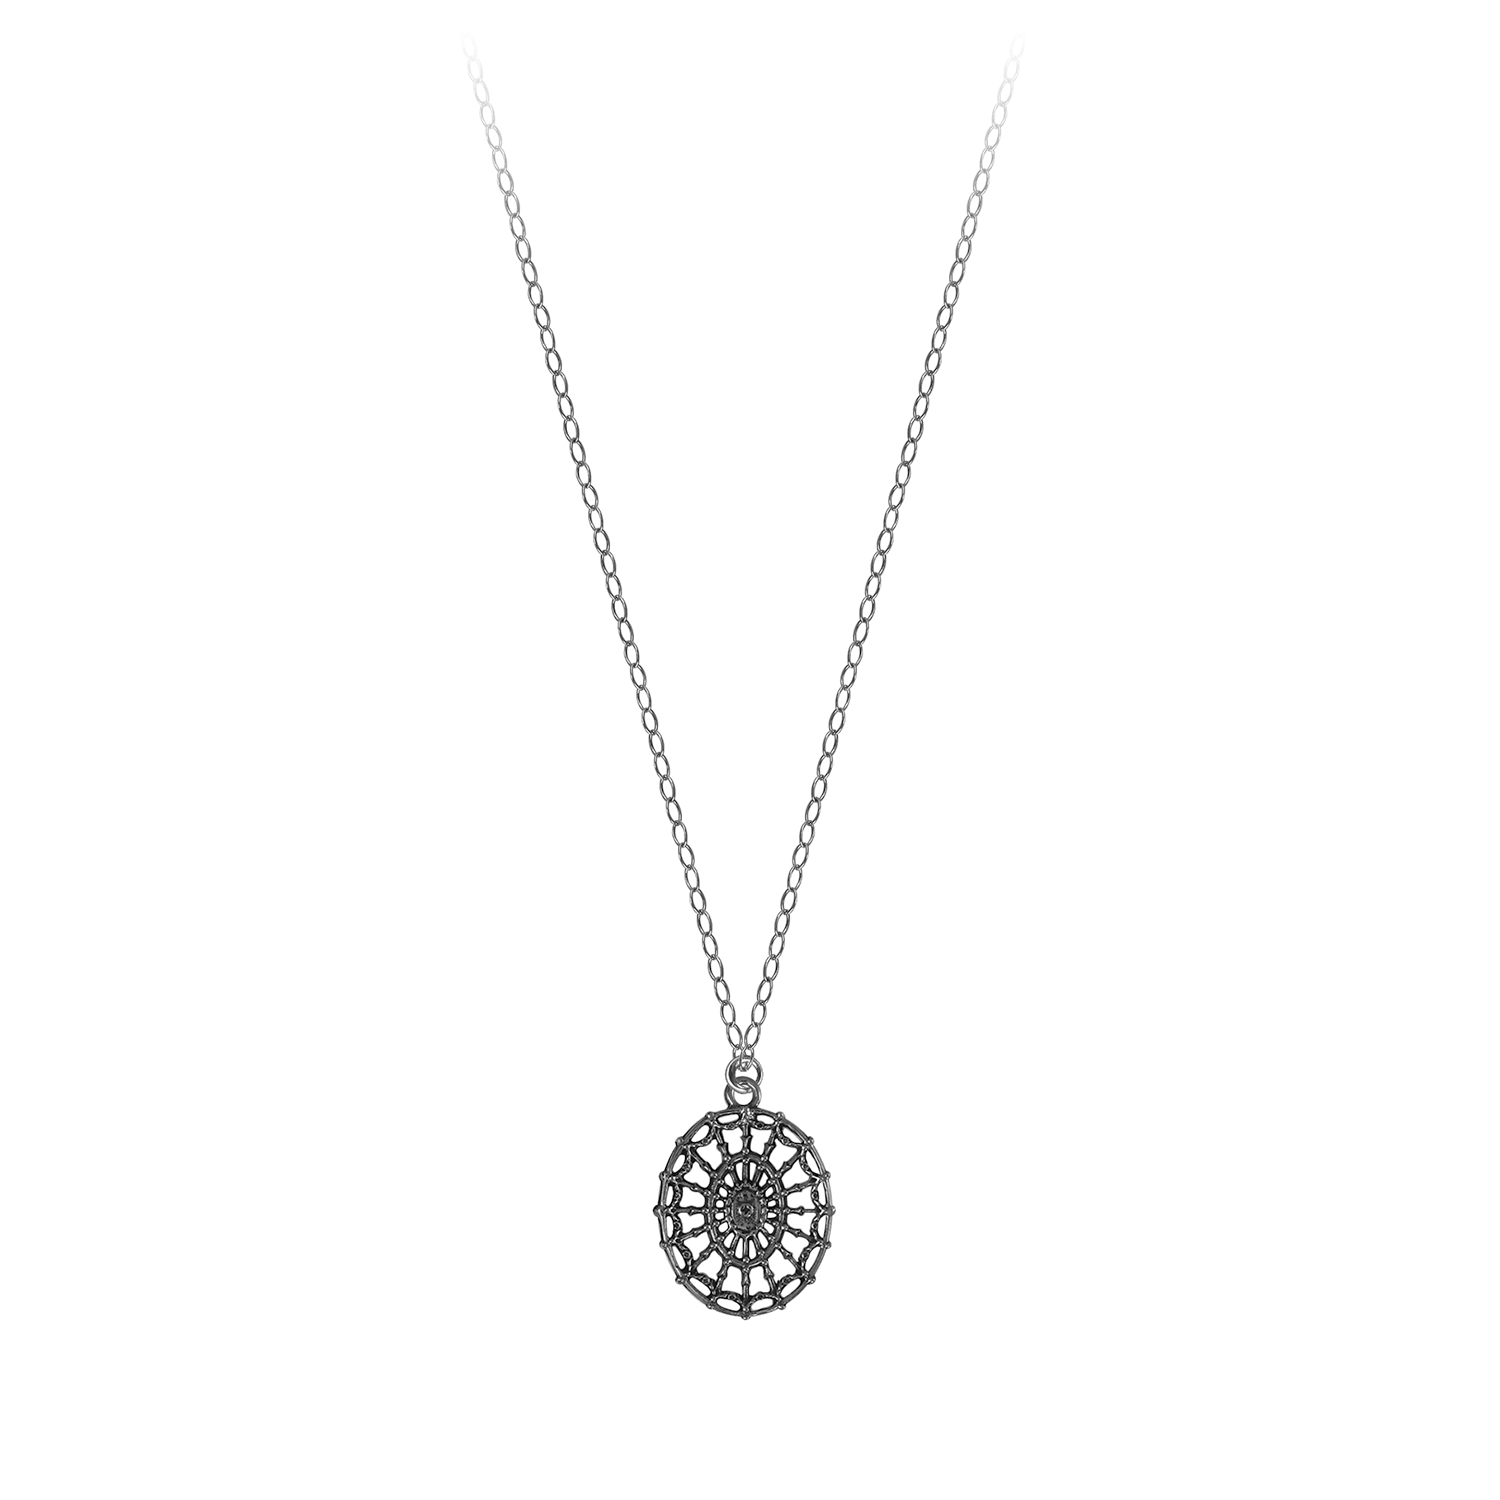 DAR Oval on Light Chain Necklace